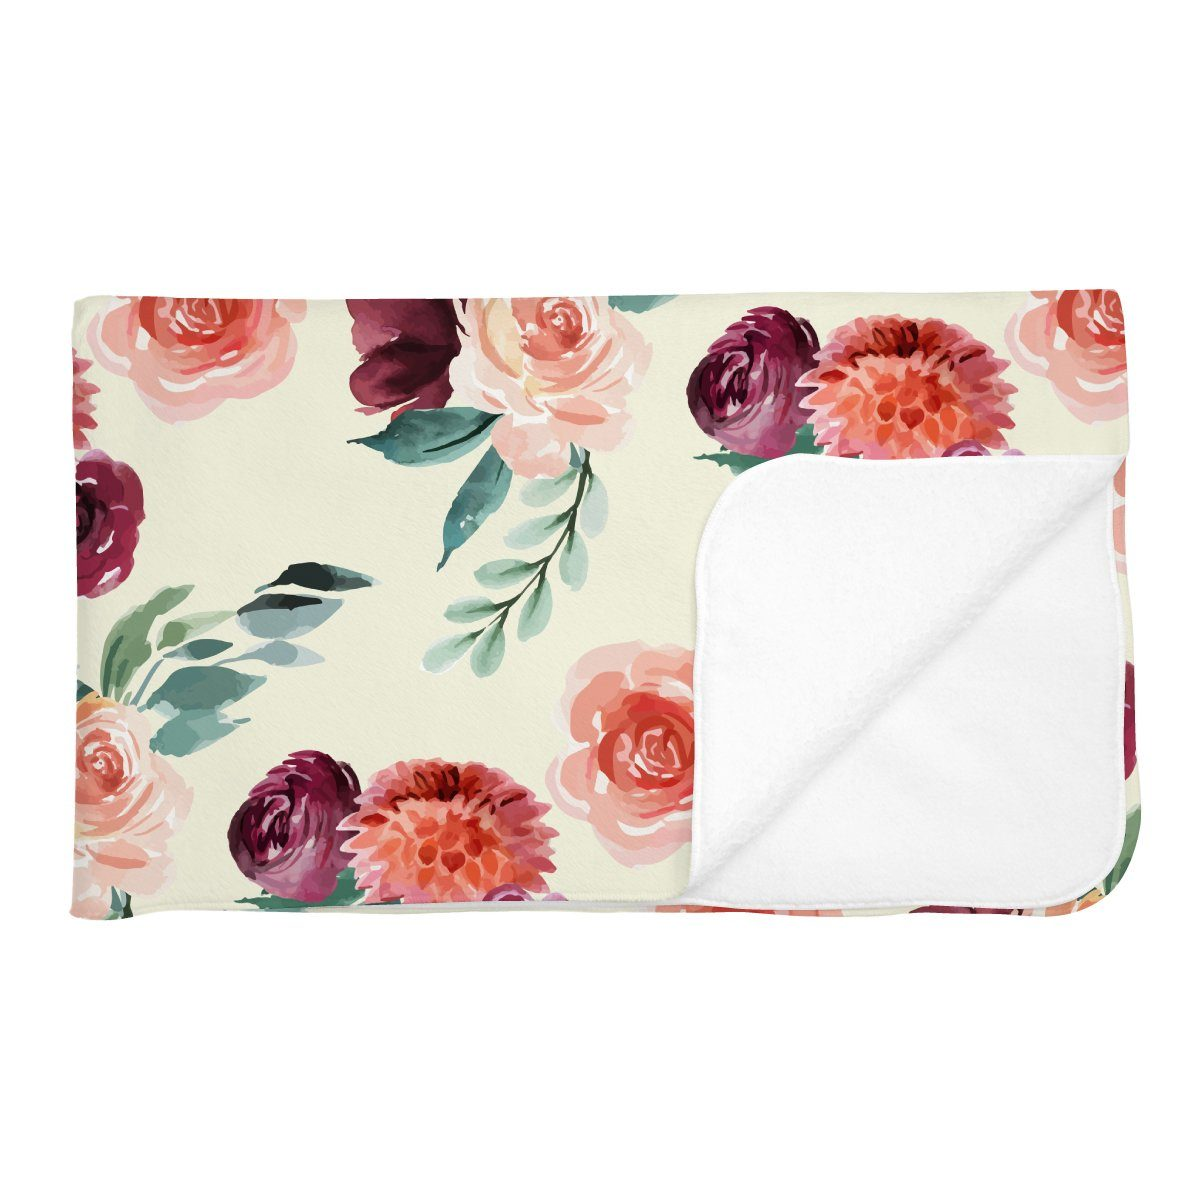 Alice's Autumn Rose | Adult Size Blanket